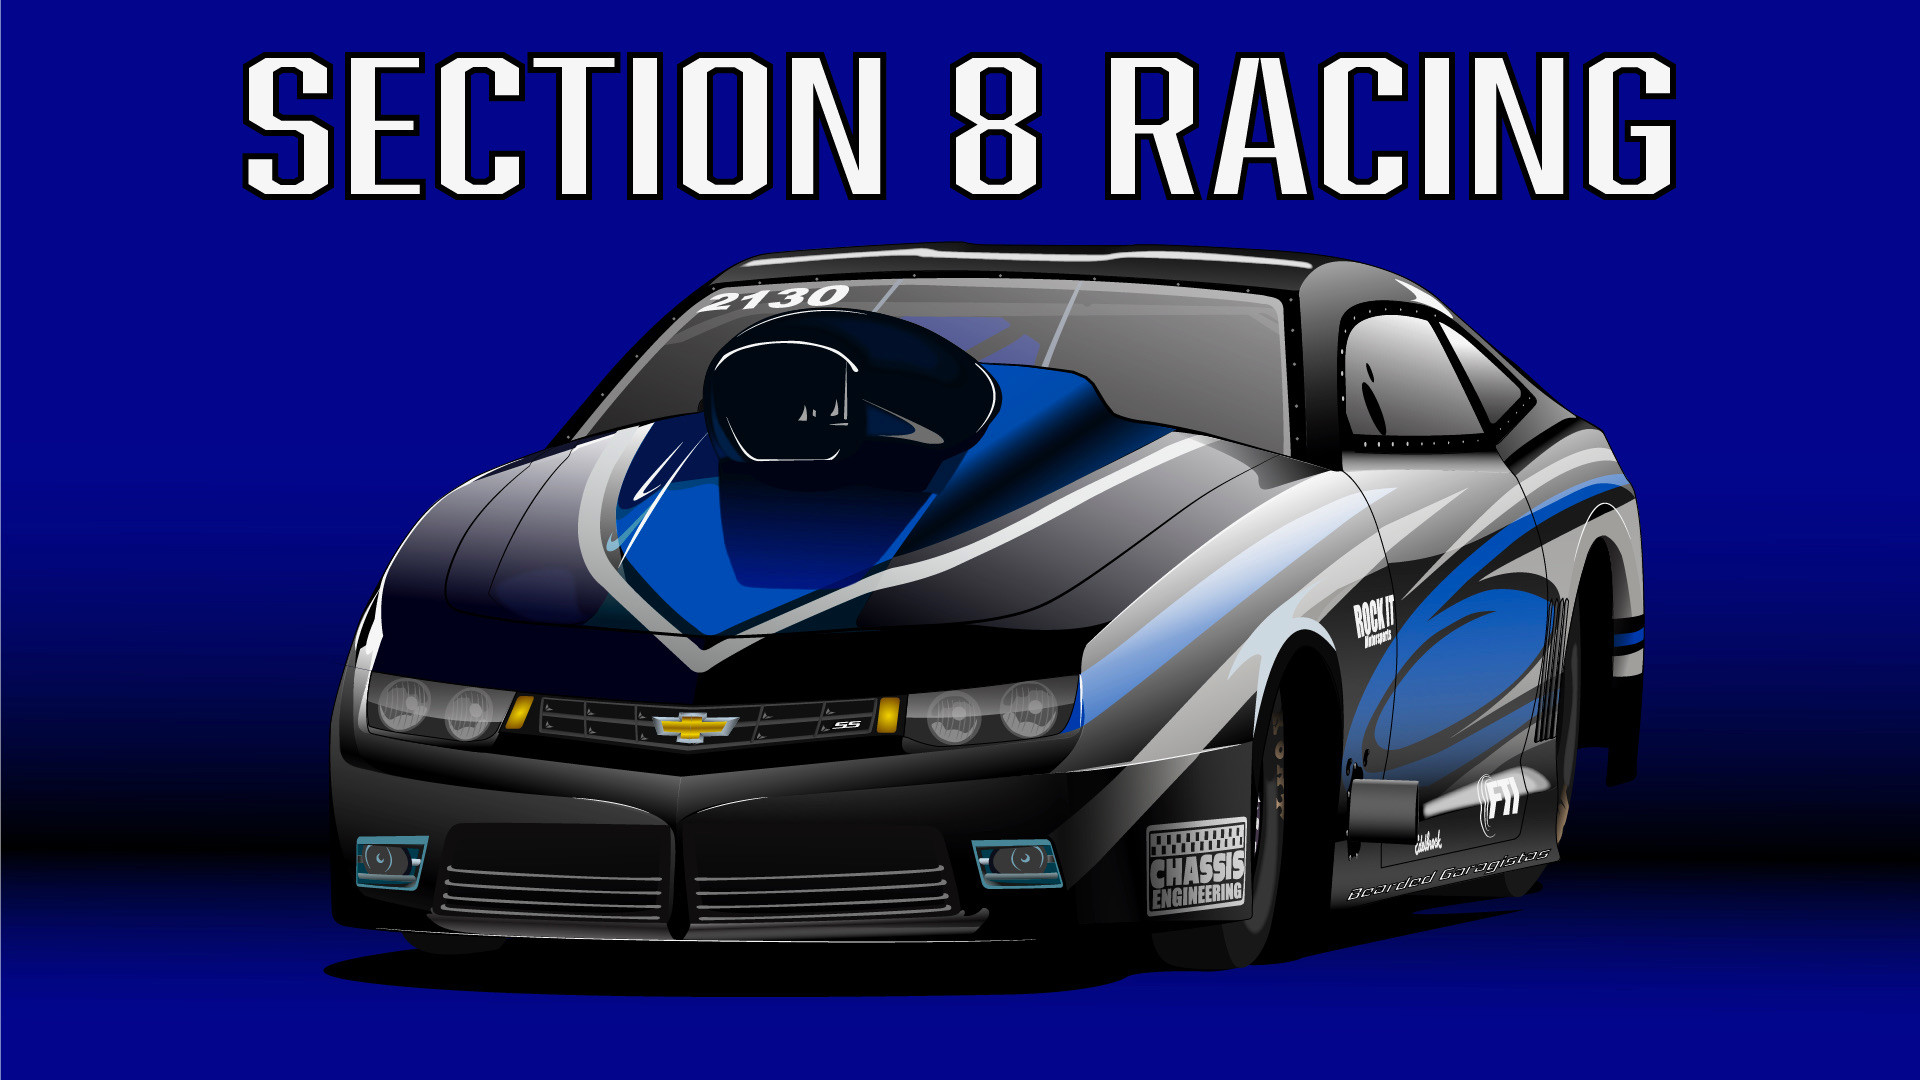 Section 8 Racing